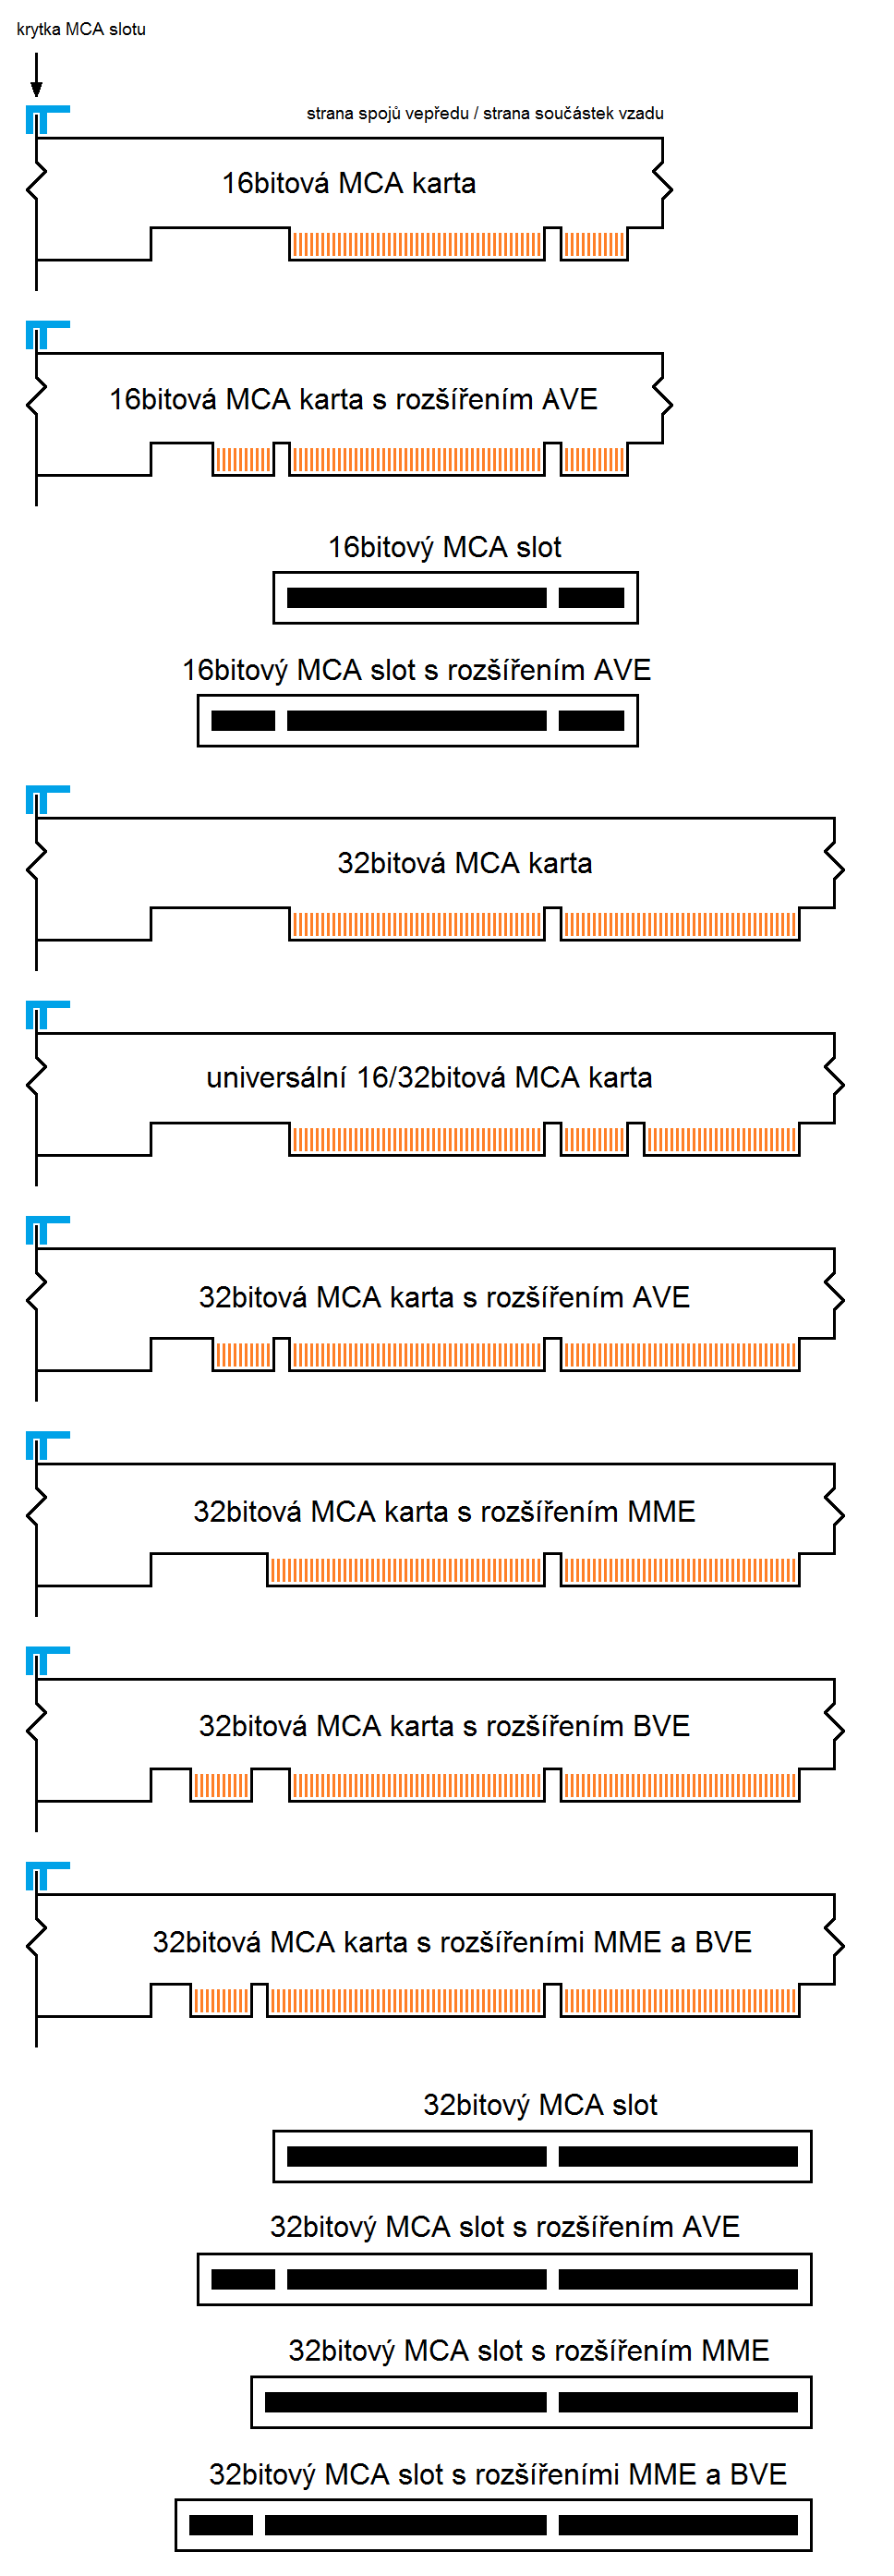 Tomáš Slavotínek (2012).This diagram shows the key(s) positions on 16-bit and 32-bit MCA cards and slots (including AVE, BVE and MME extensions). http://commons.wikimedia.org/wiki/File:MCA_Keying.png